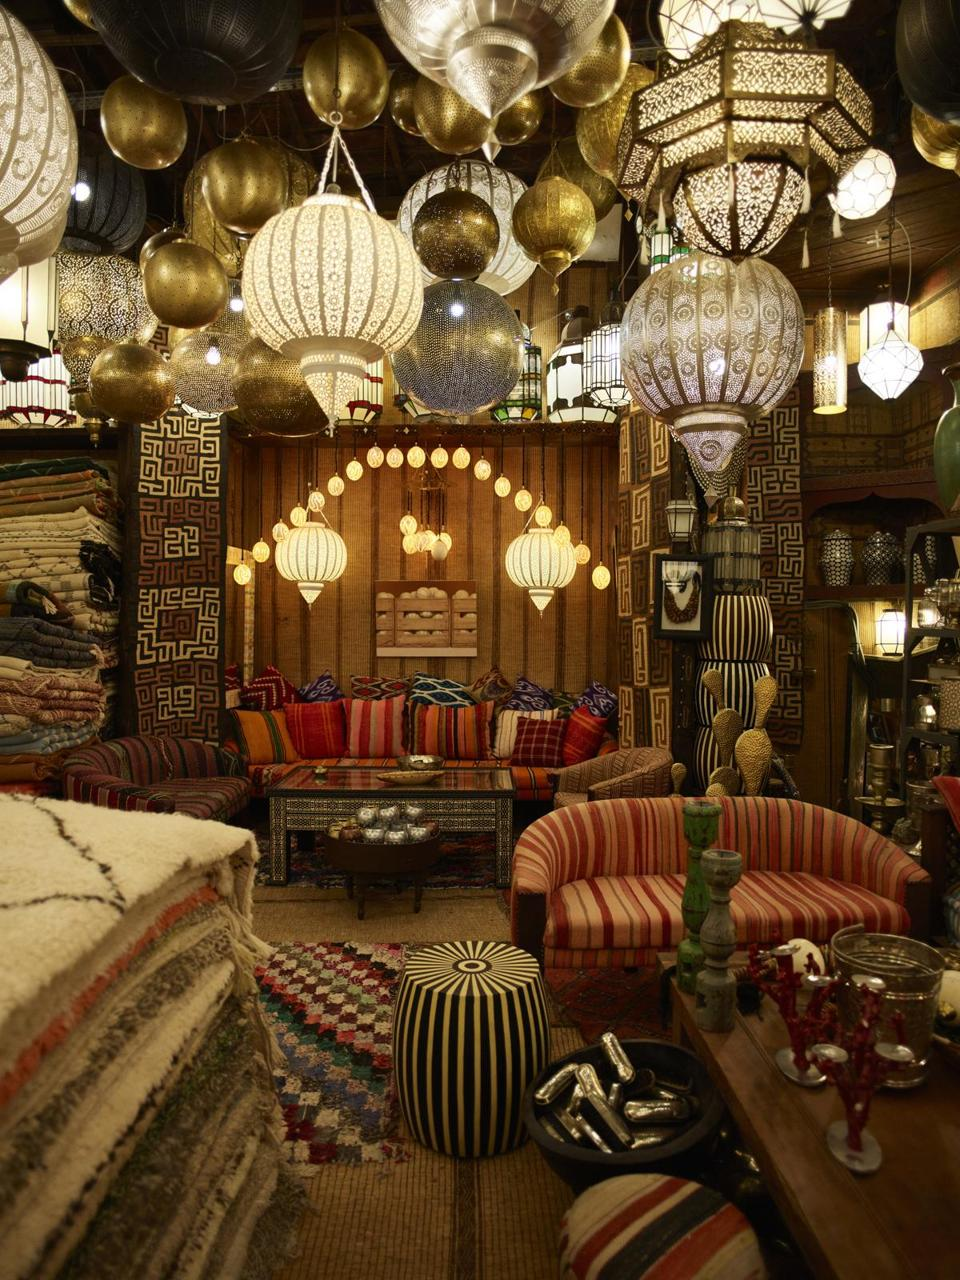 Mustapha Blaoui's eponymous shop in the Marrakech medina.